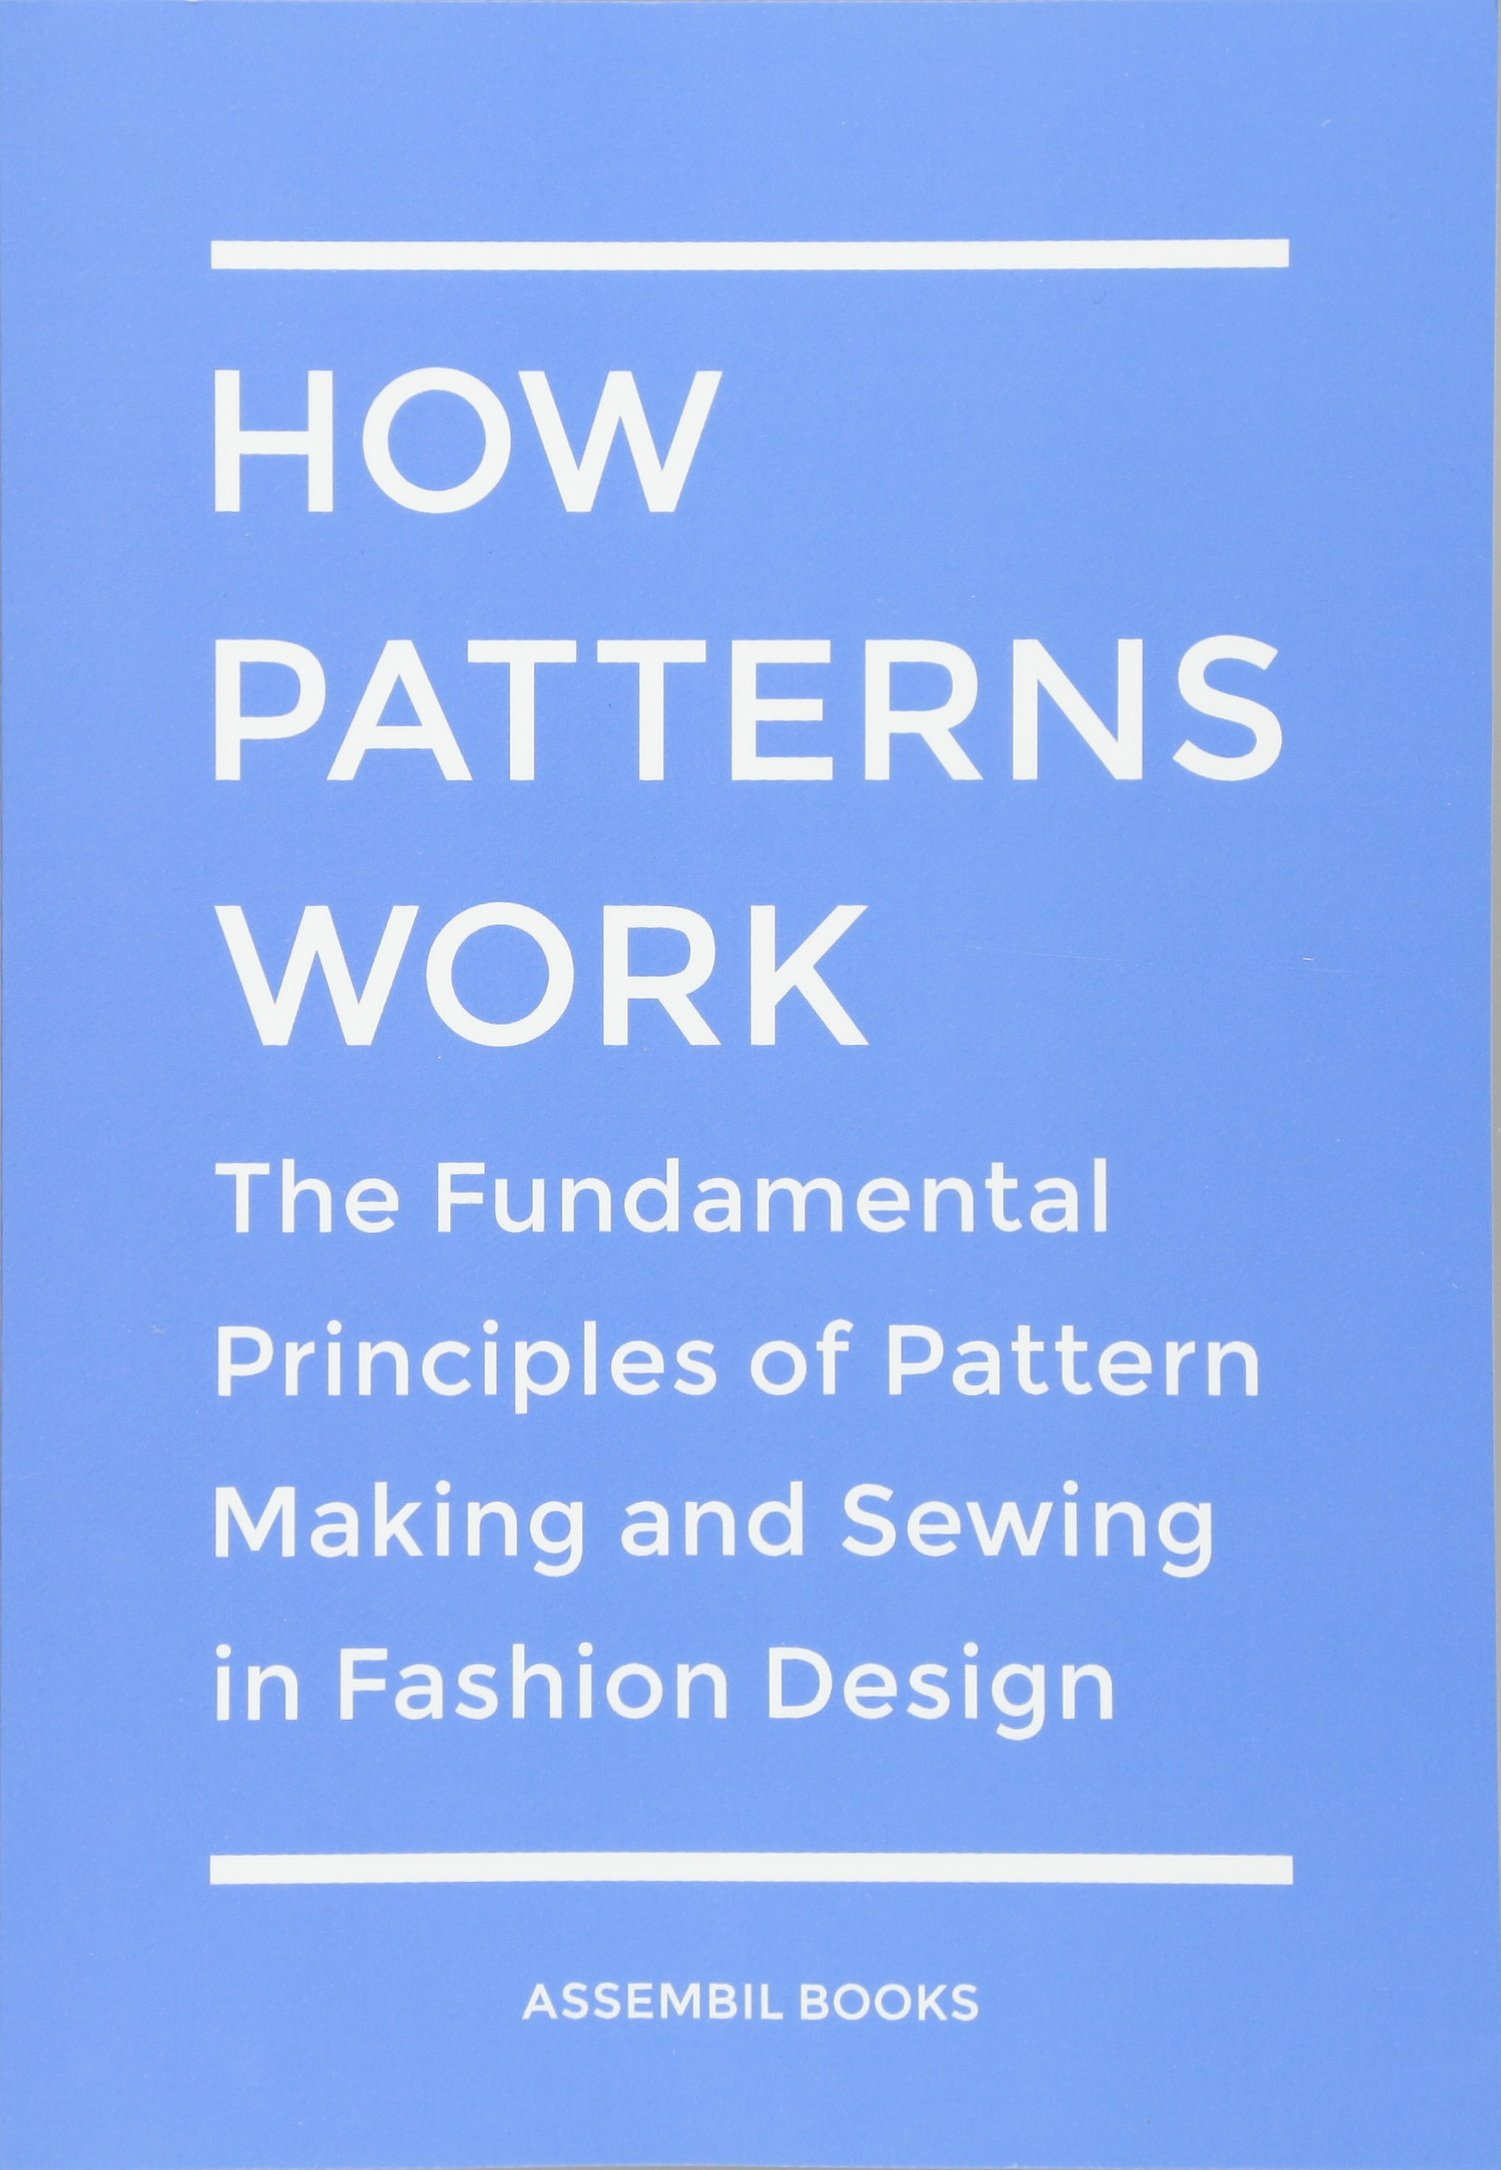 How Patterns Work: The Fundamental Principles of Pattern